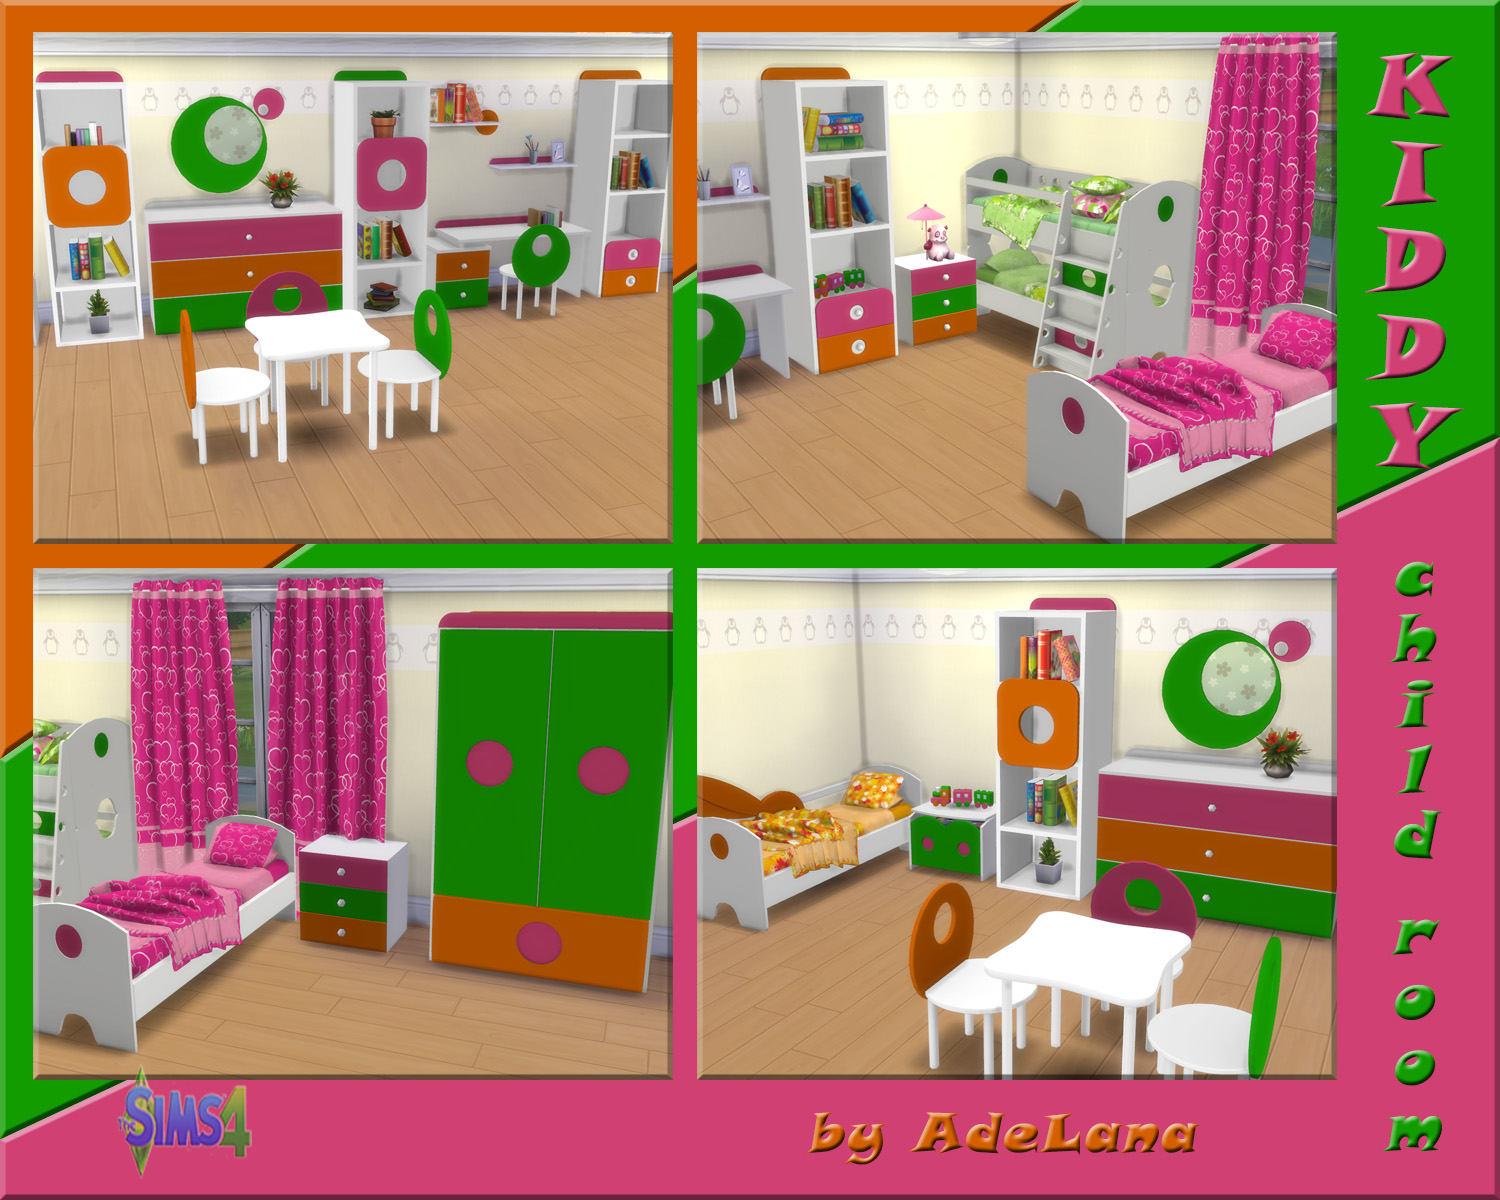 Kiddy Child room by AdeLanaSP